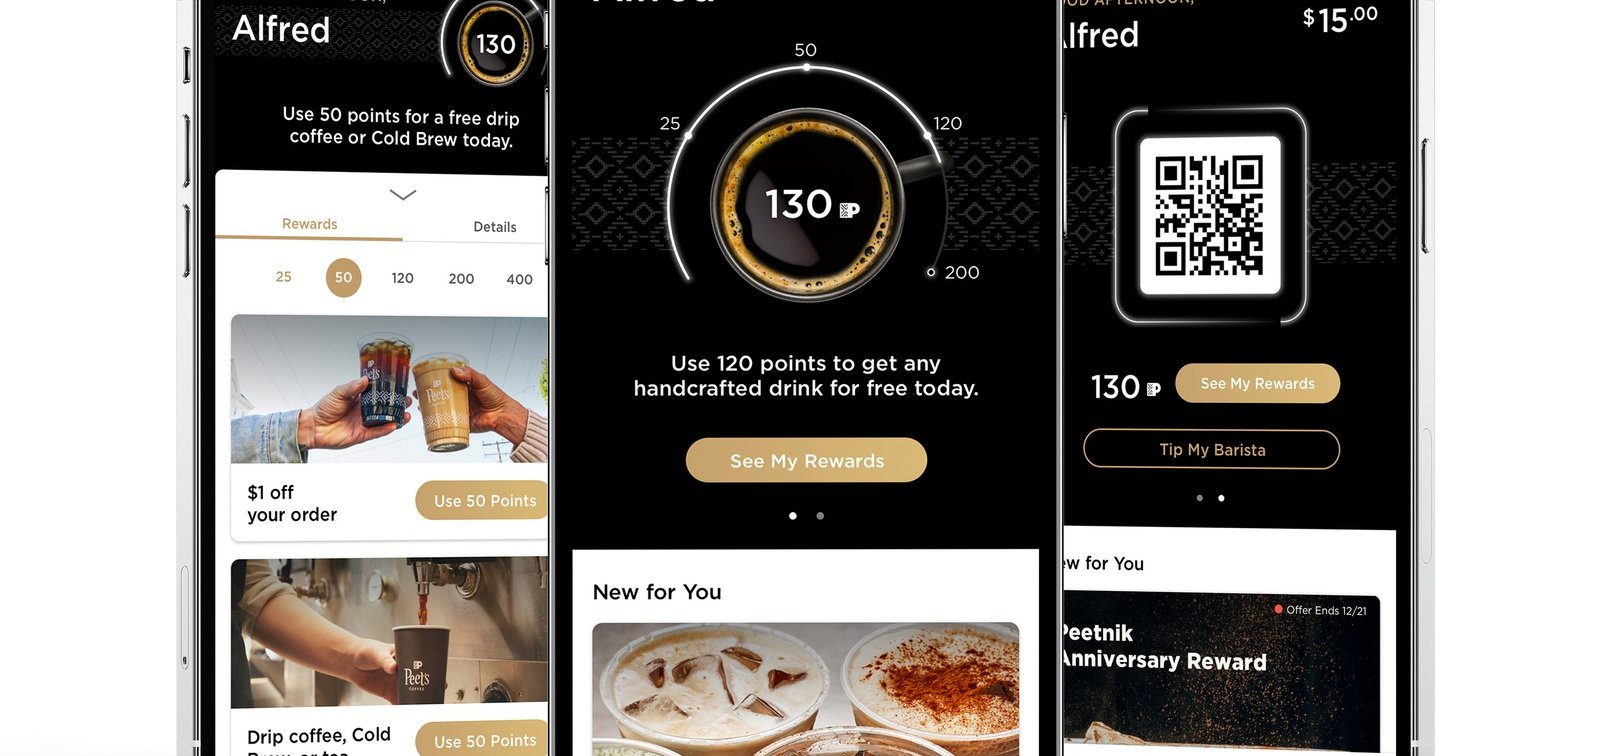 Peet's Coffee adds more incentives to its loyalty program